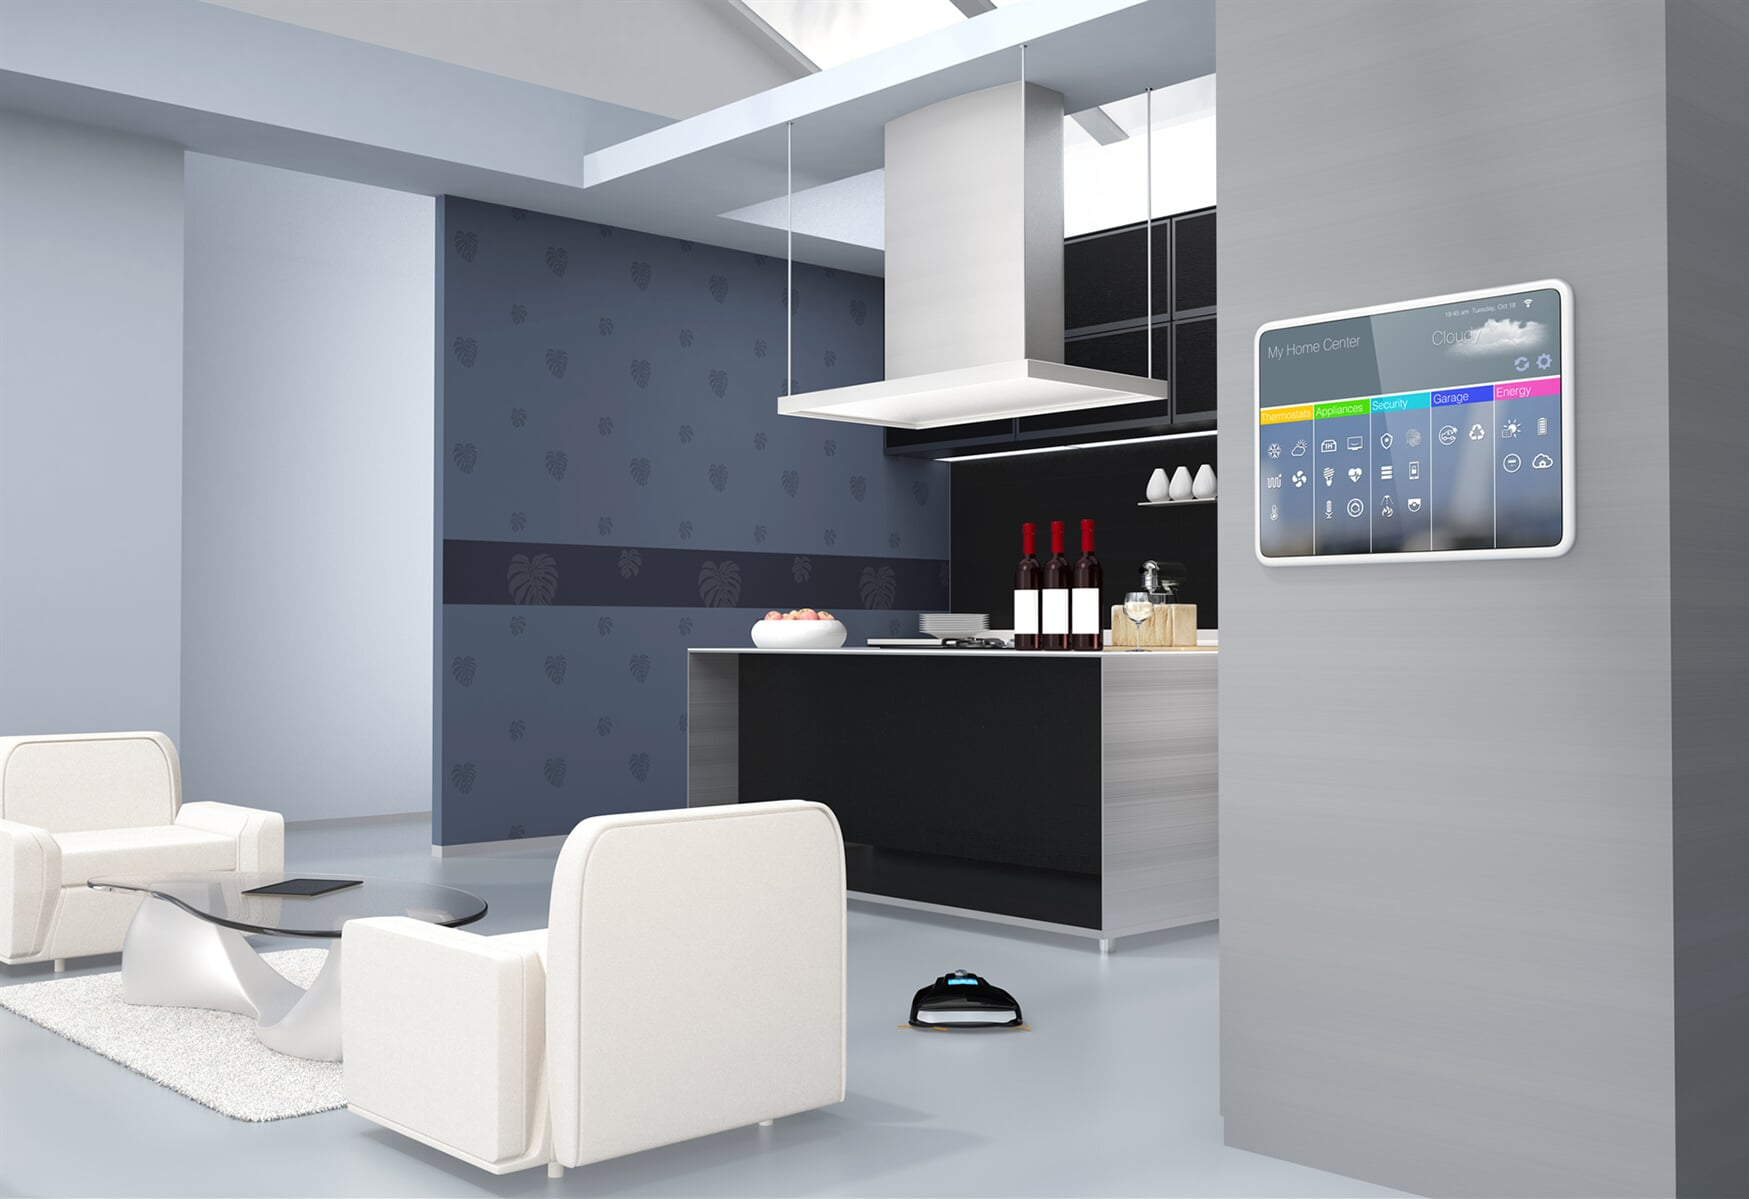 Home-automation-control-panel-on-the-kitchen-wall-616119968_2095x1436